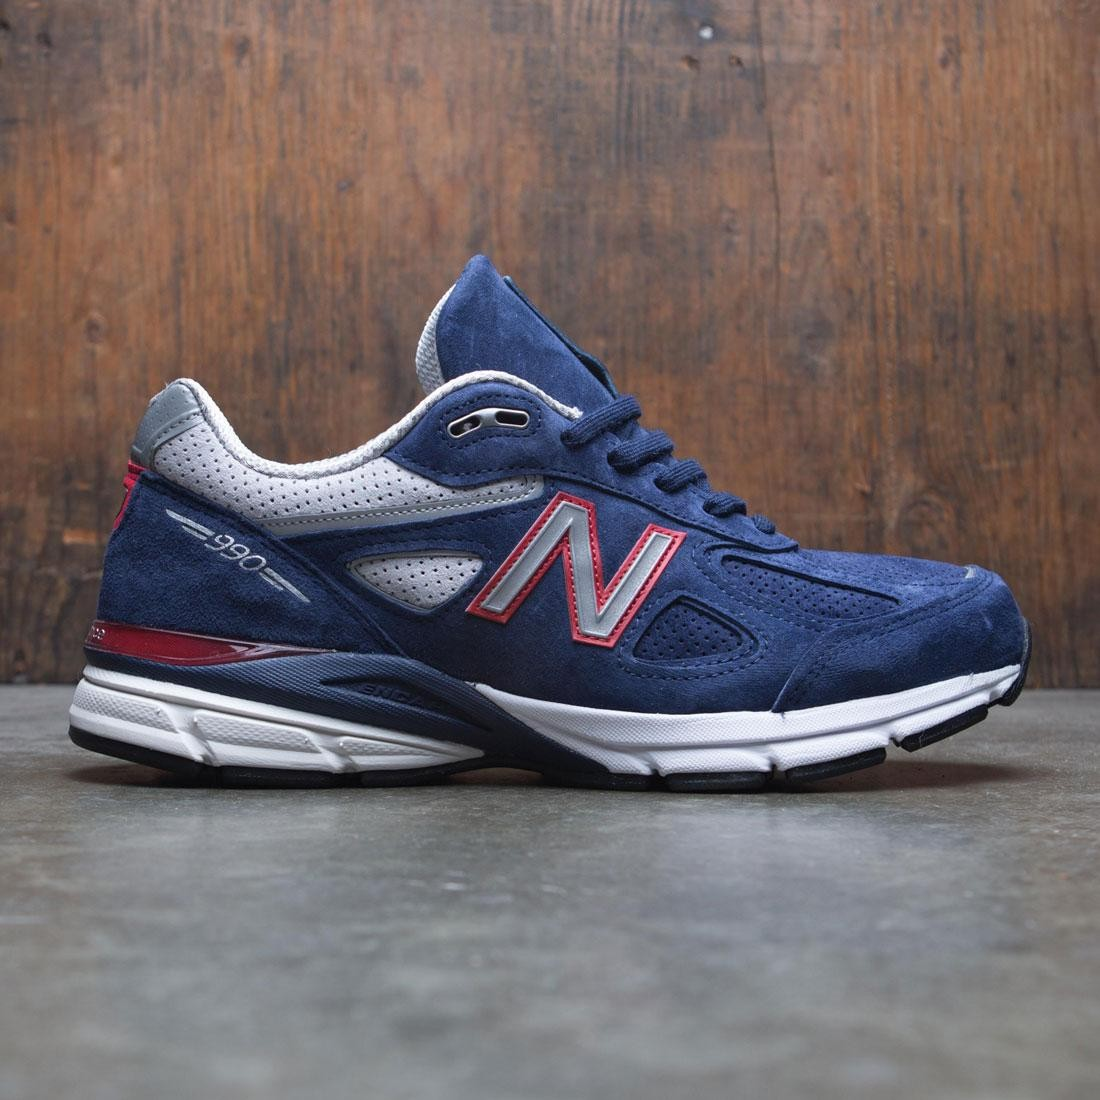 sports shoes 5e51a 31c01 New Balance Men 990v4 M990BR4 - Made In USA (navy / pigment / red)